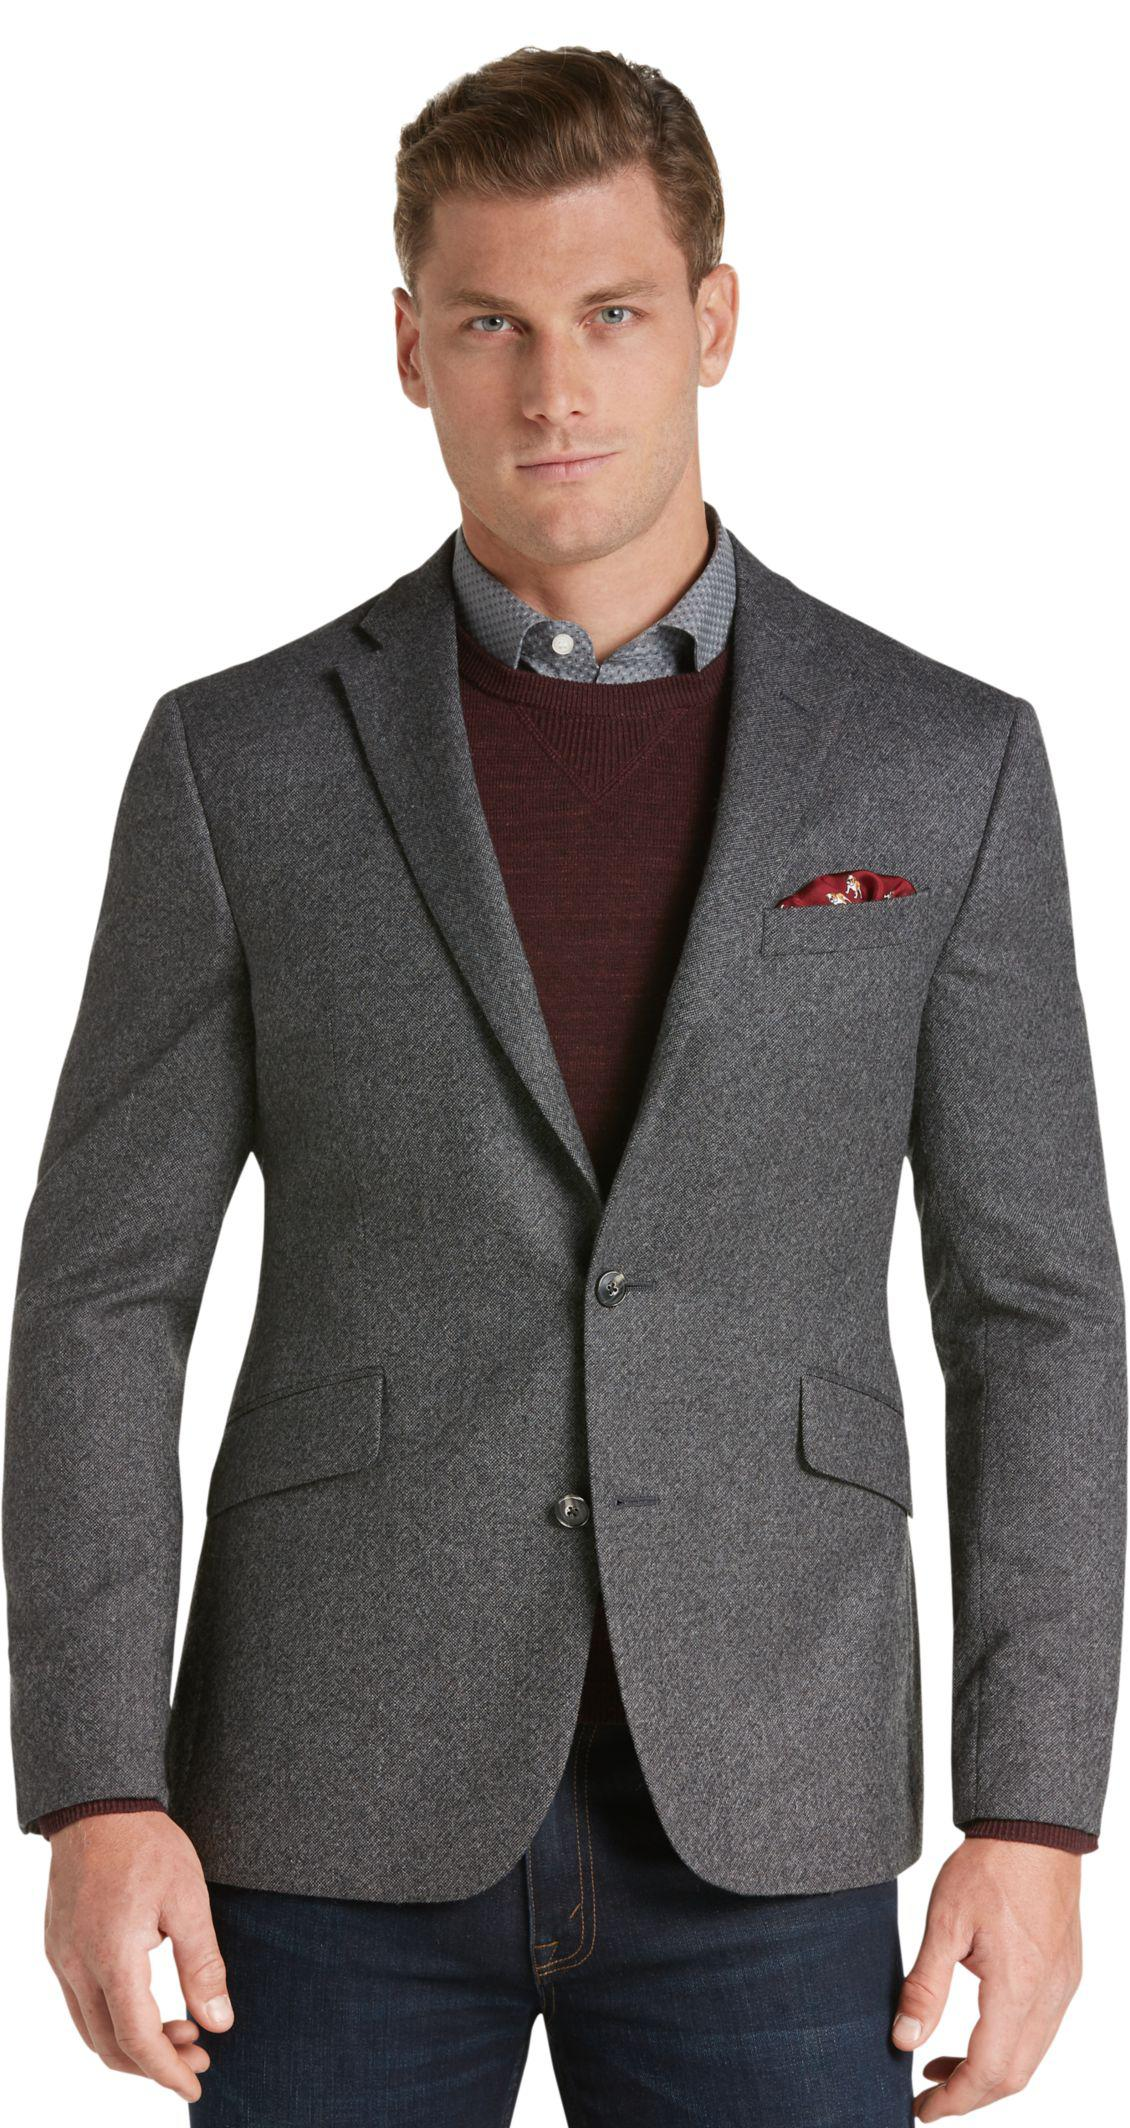 Jos a bank 1905 collection slim fit donegal sportcoat for Jos a bank slim fit vs tailored fit shirts